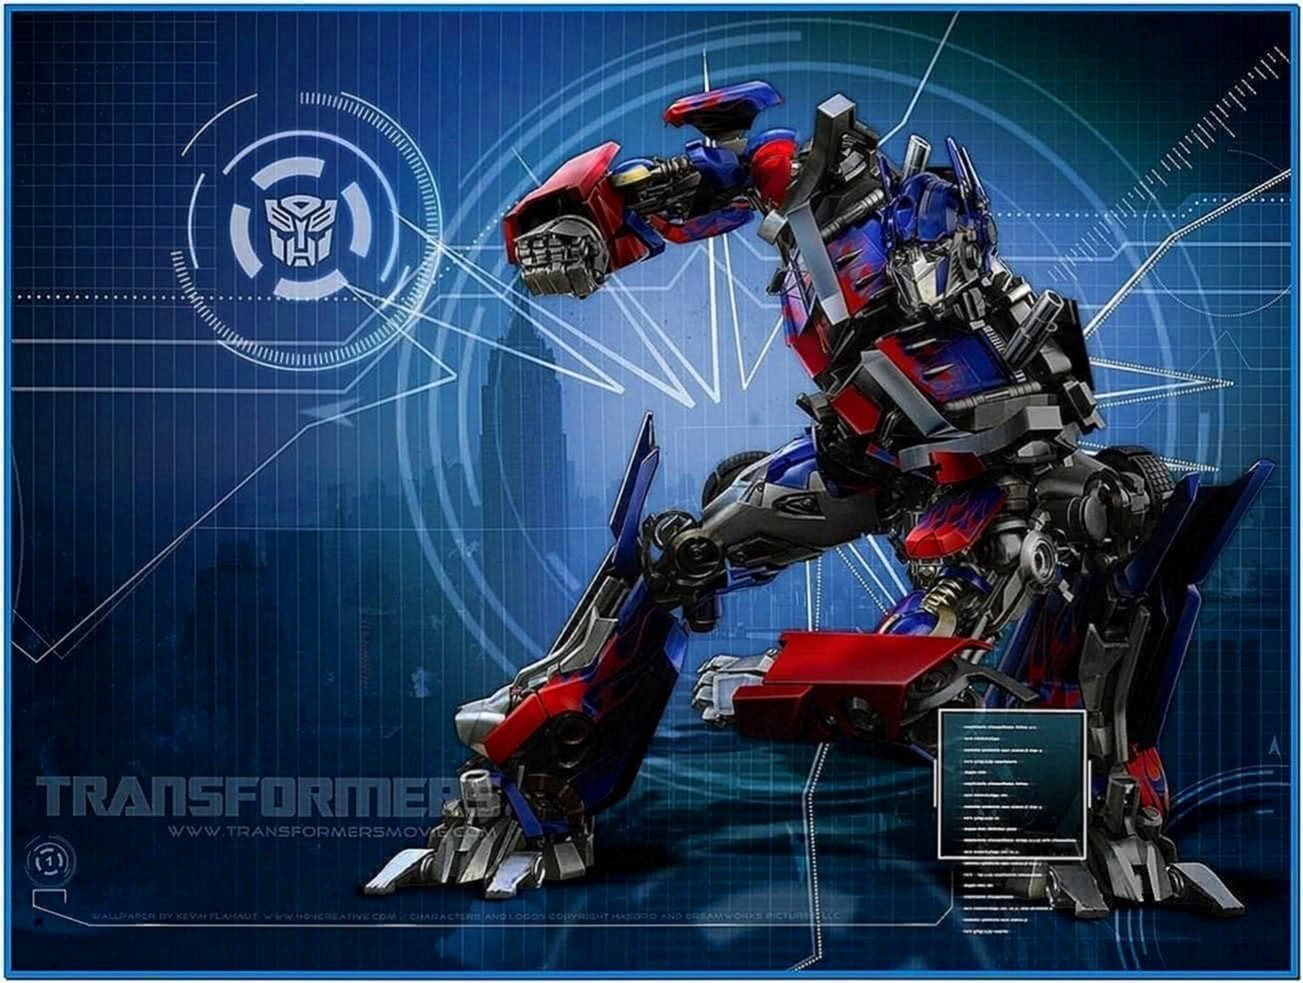 Screensaver De Transformers 3